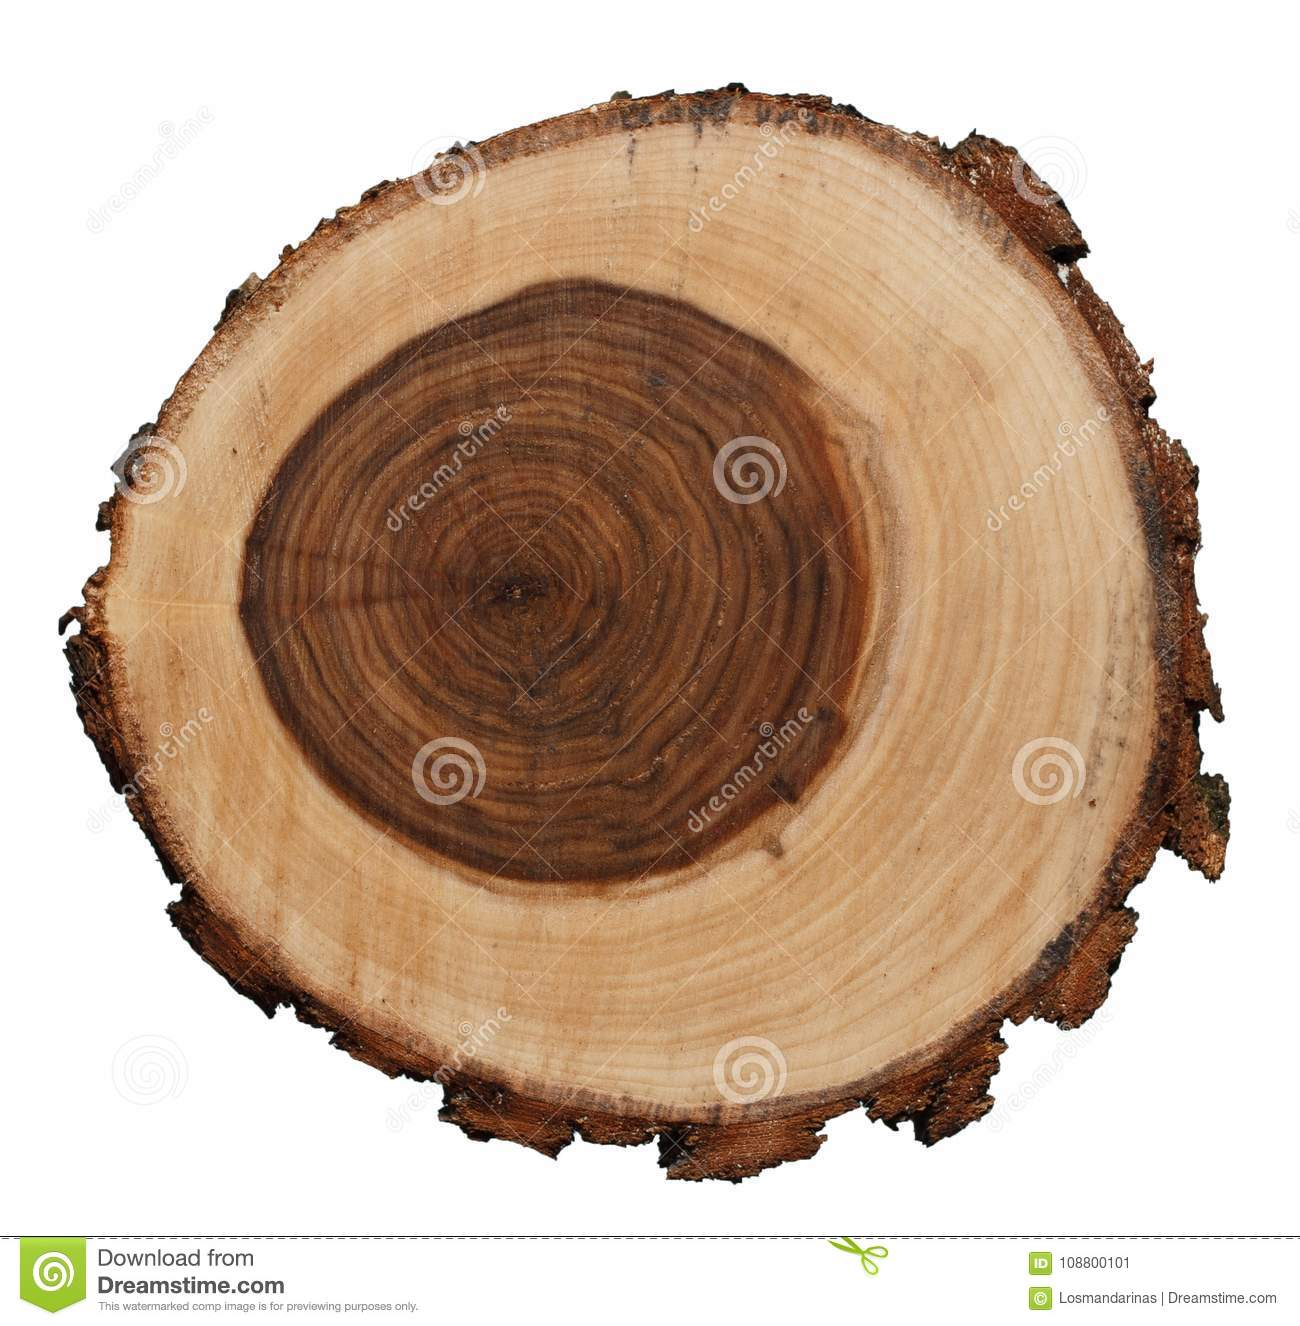 Cross section of Weeping Willow tree trunk isolated on white background